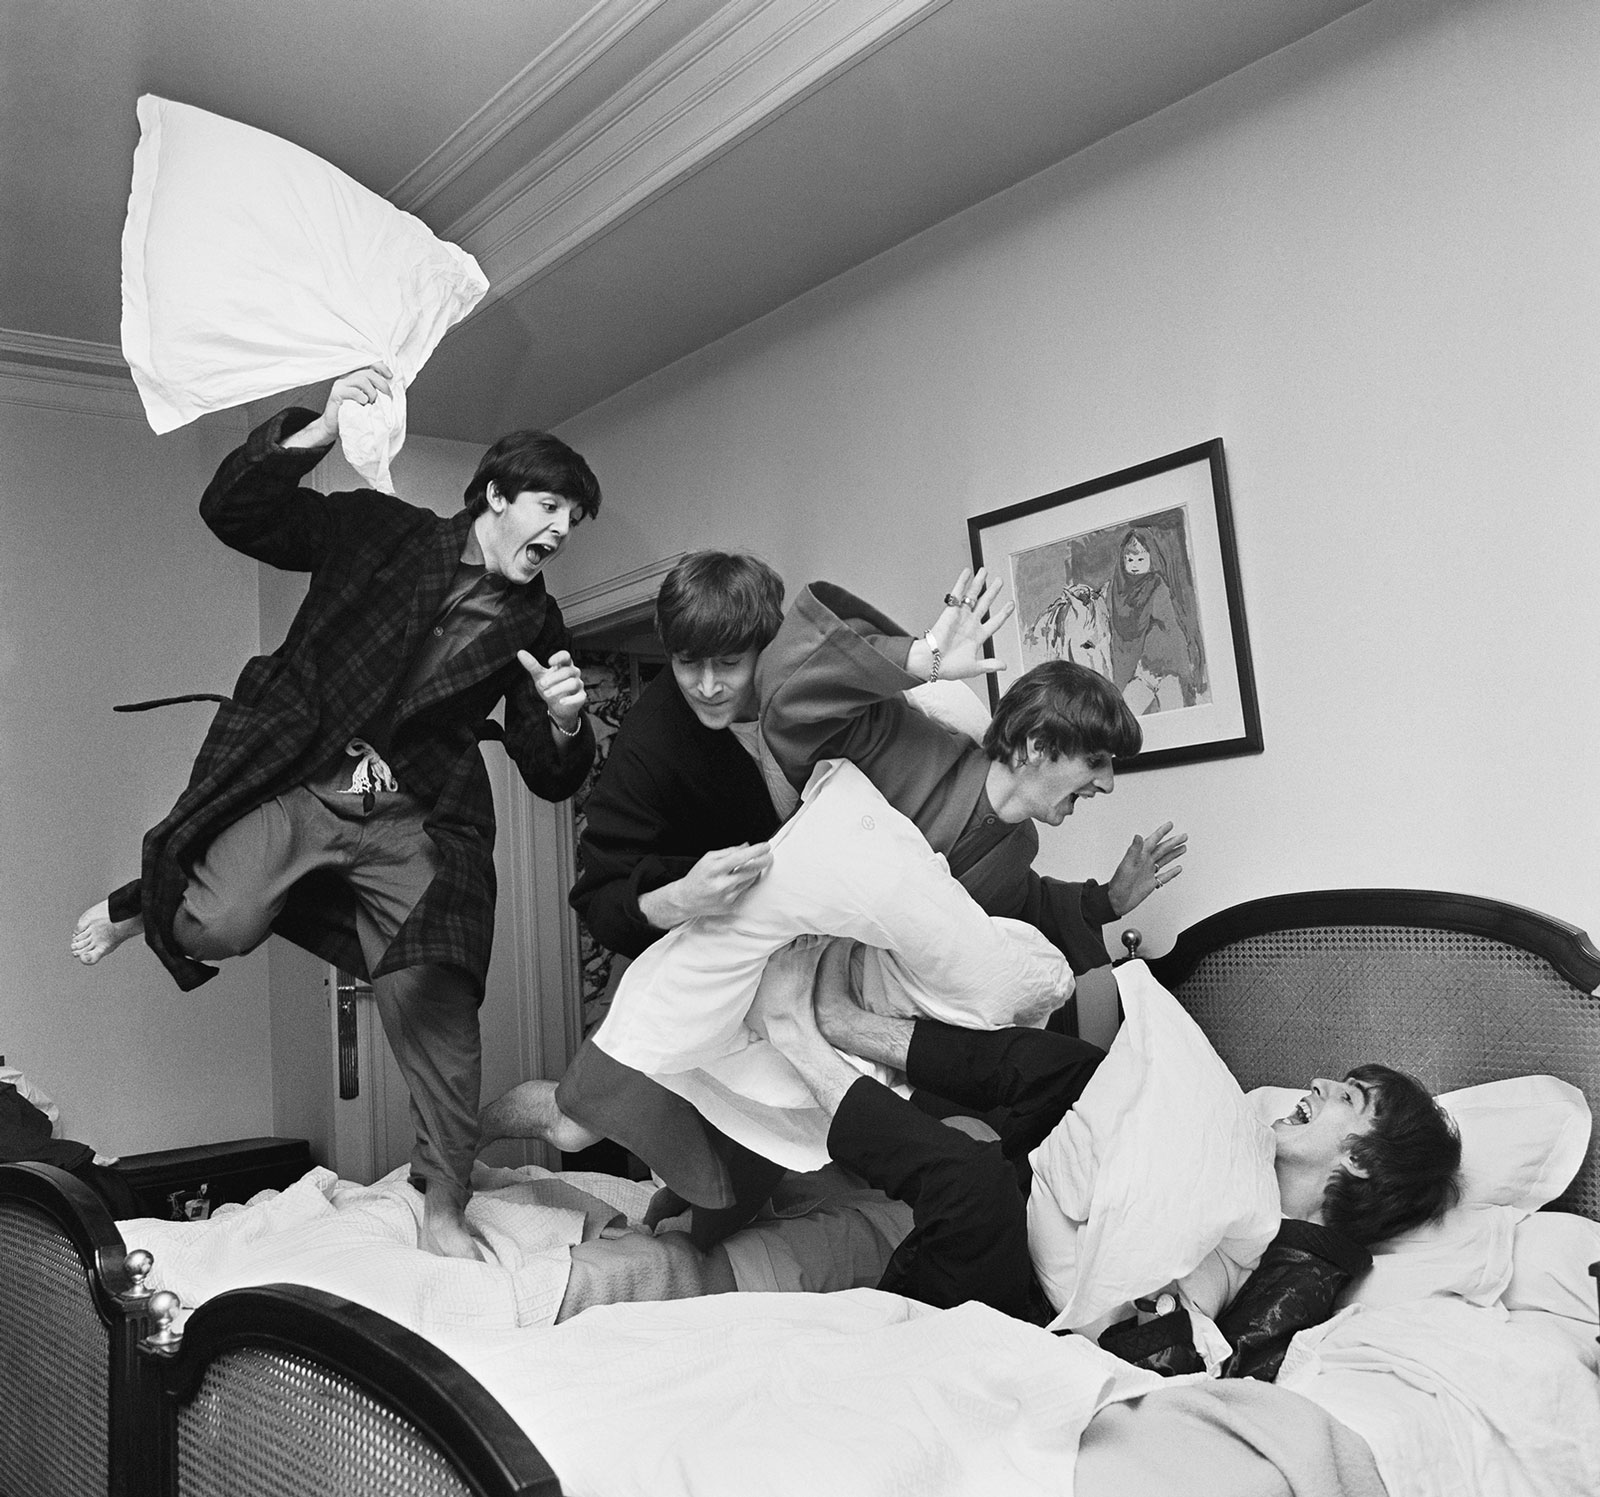 The pillow fight.